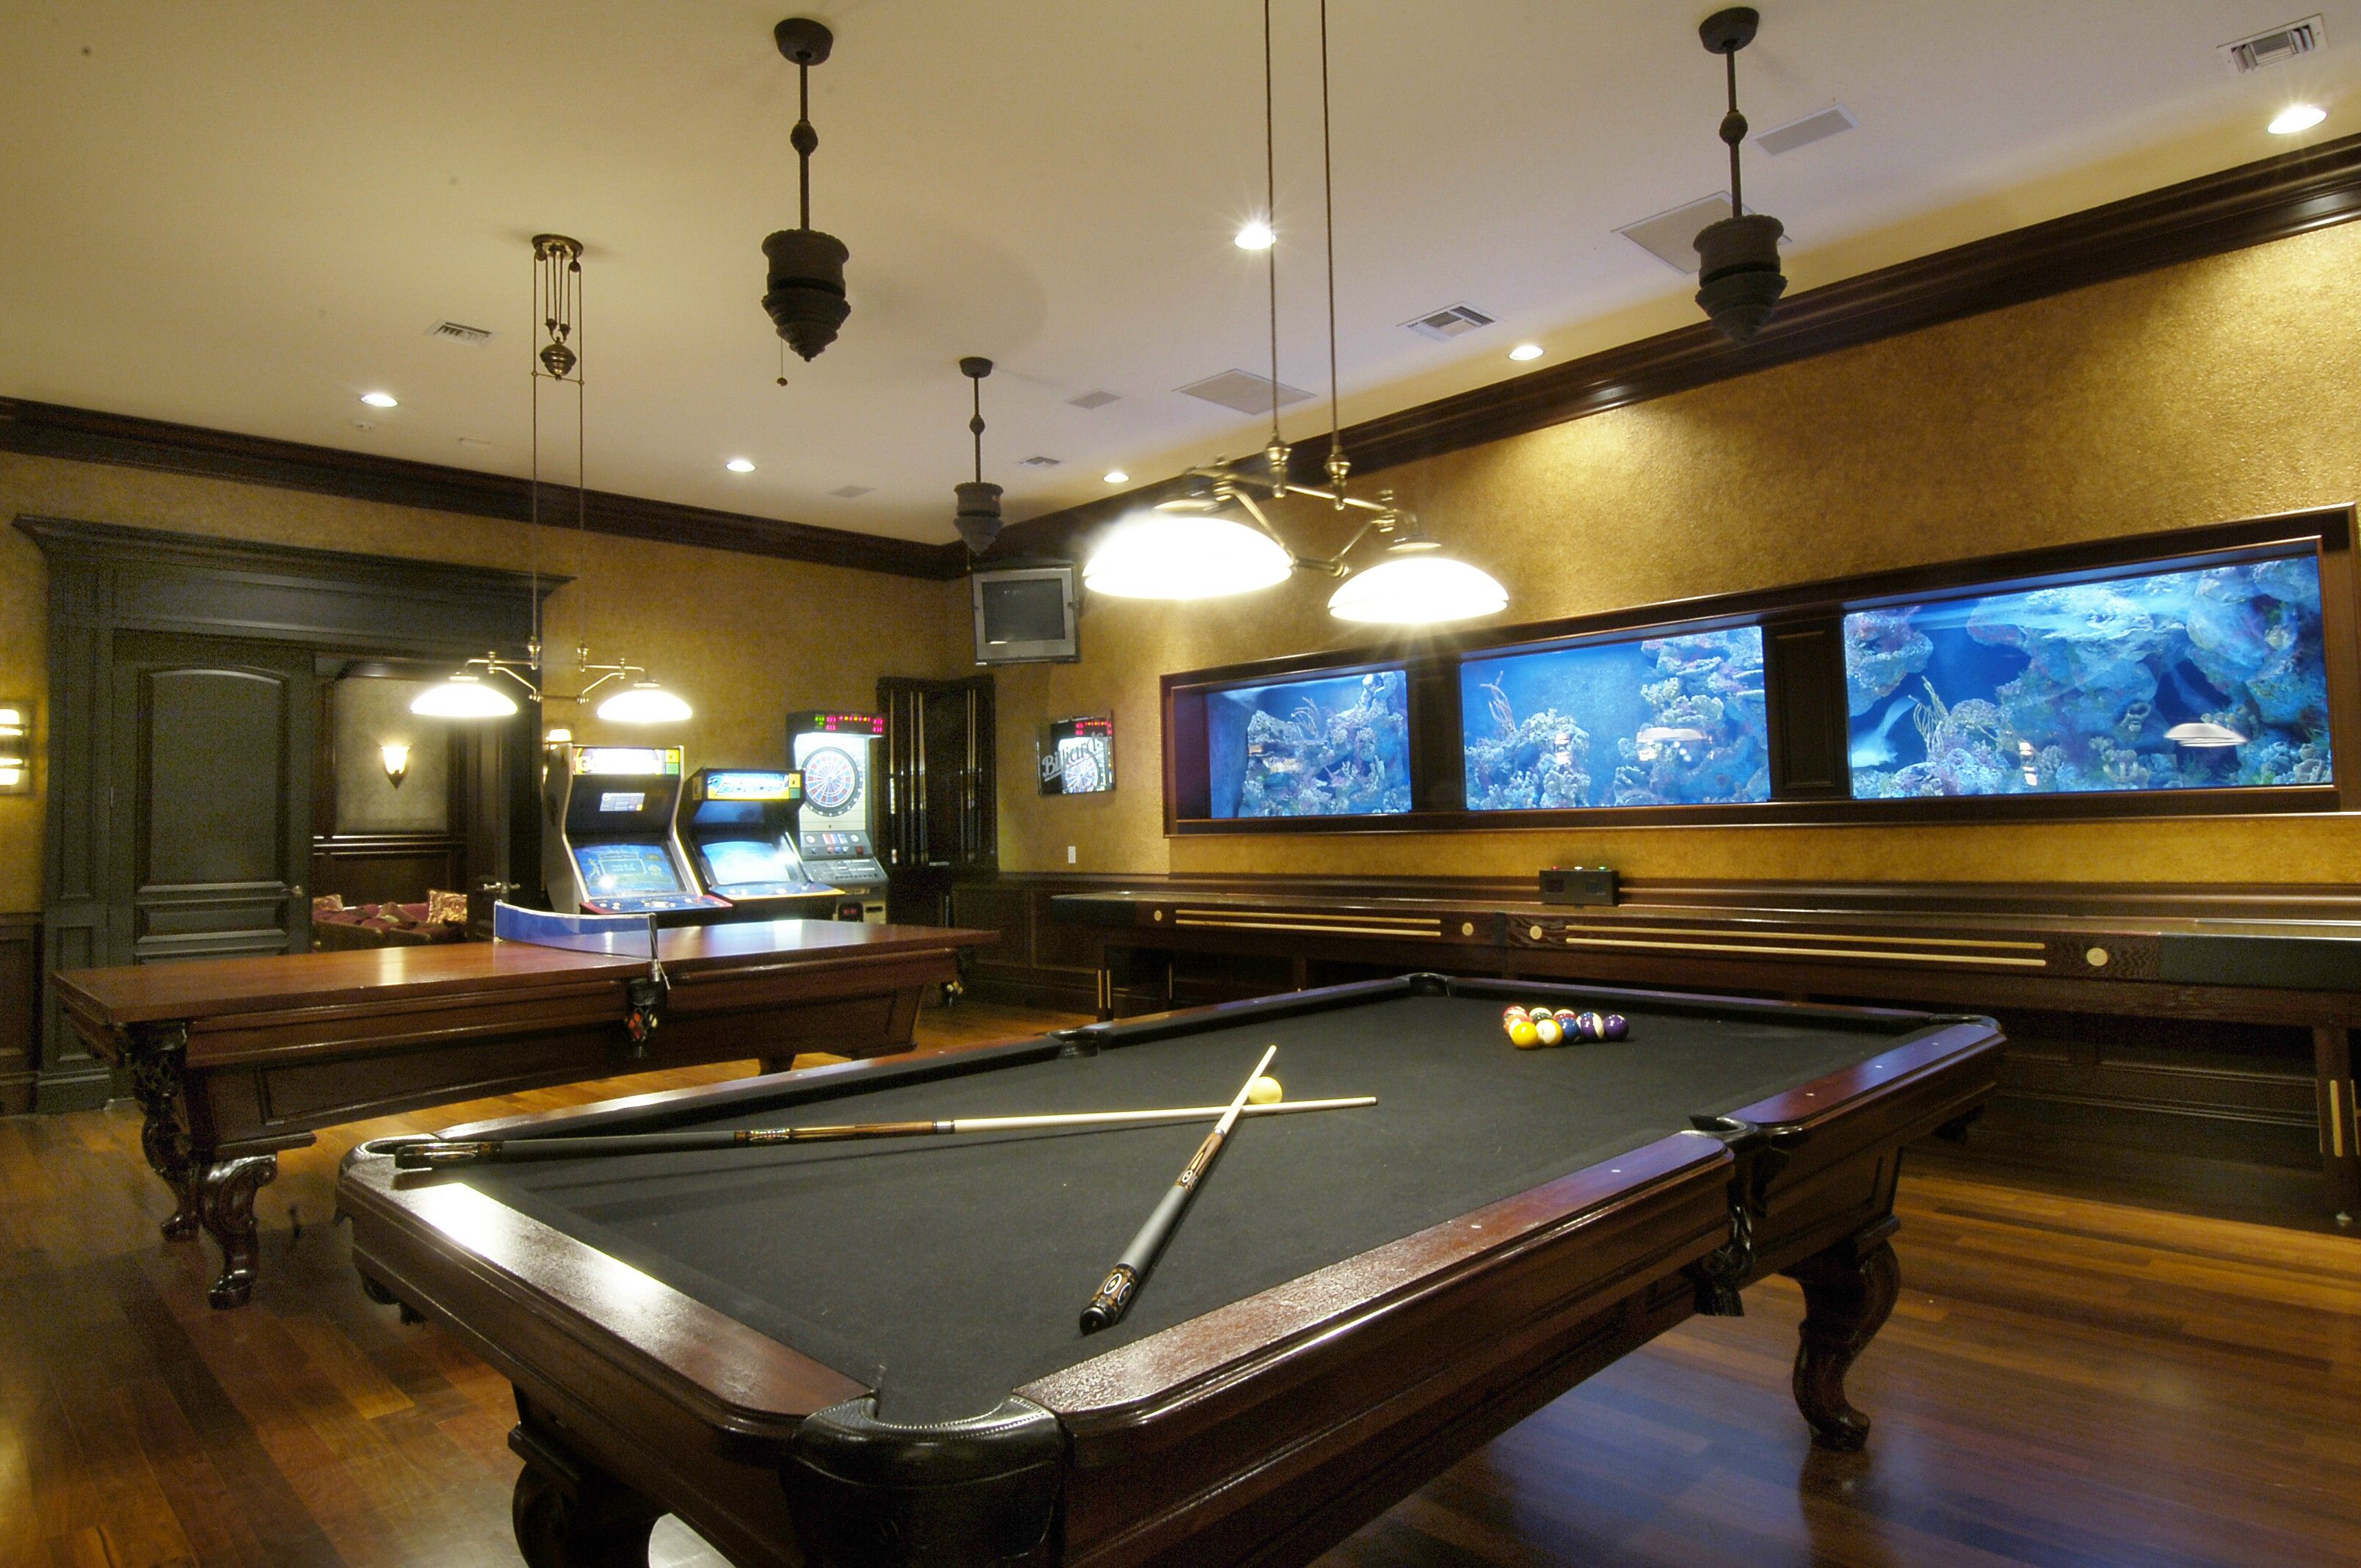 Bedroom Designing Games I Don't Even Play Pool But That Doesn't Matteroh And Check Out